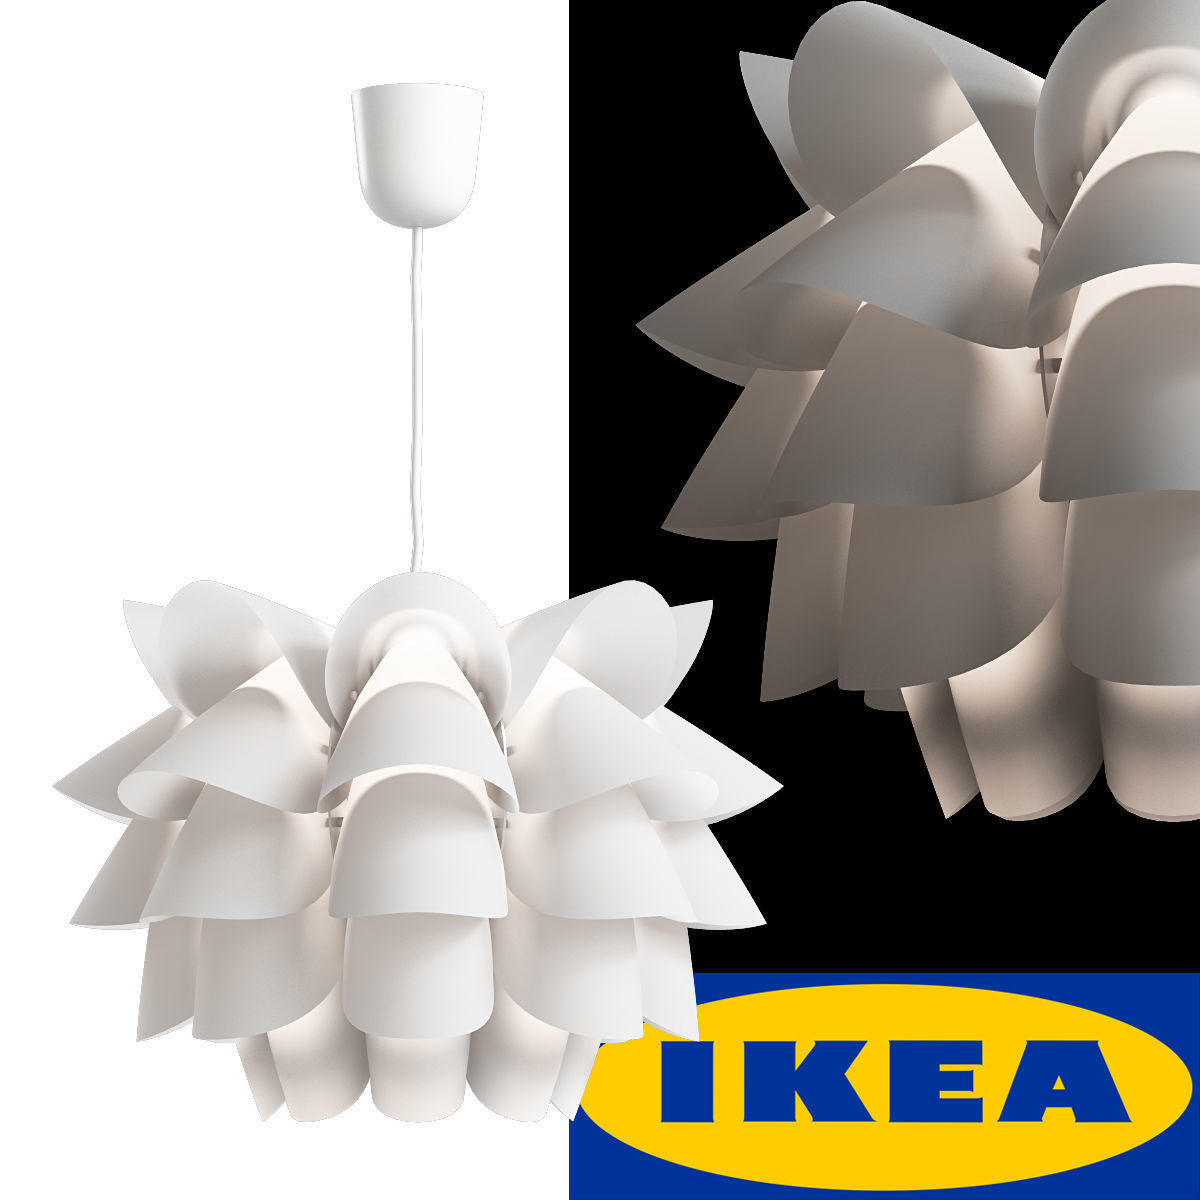 3d ikea knappa pendant lamp cgtrader ikea knappa pendant lamp 3d model max 1 mozeypictures Image collections